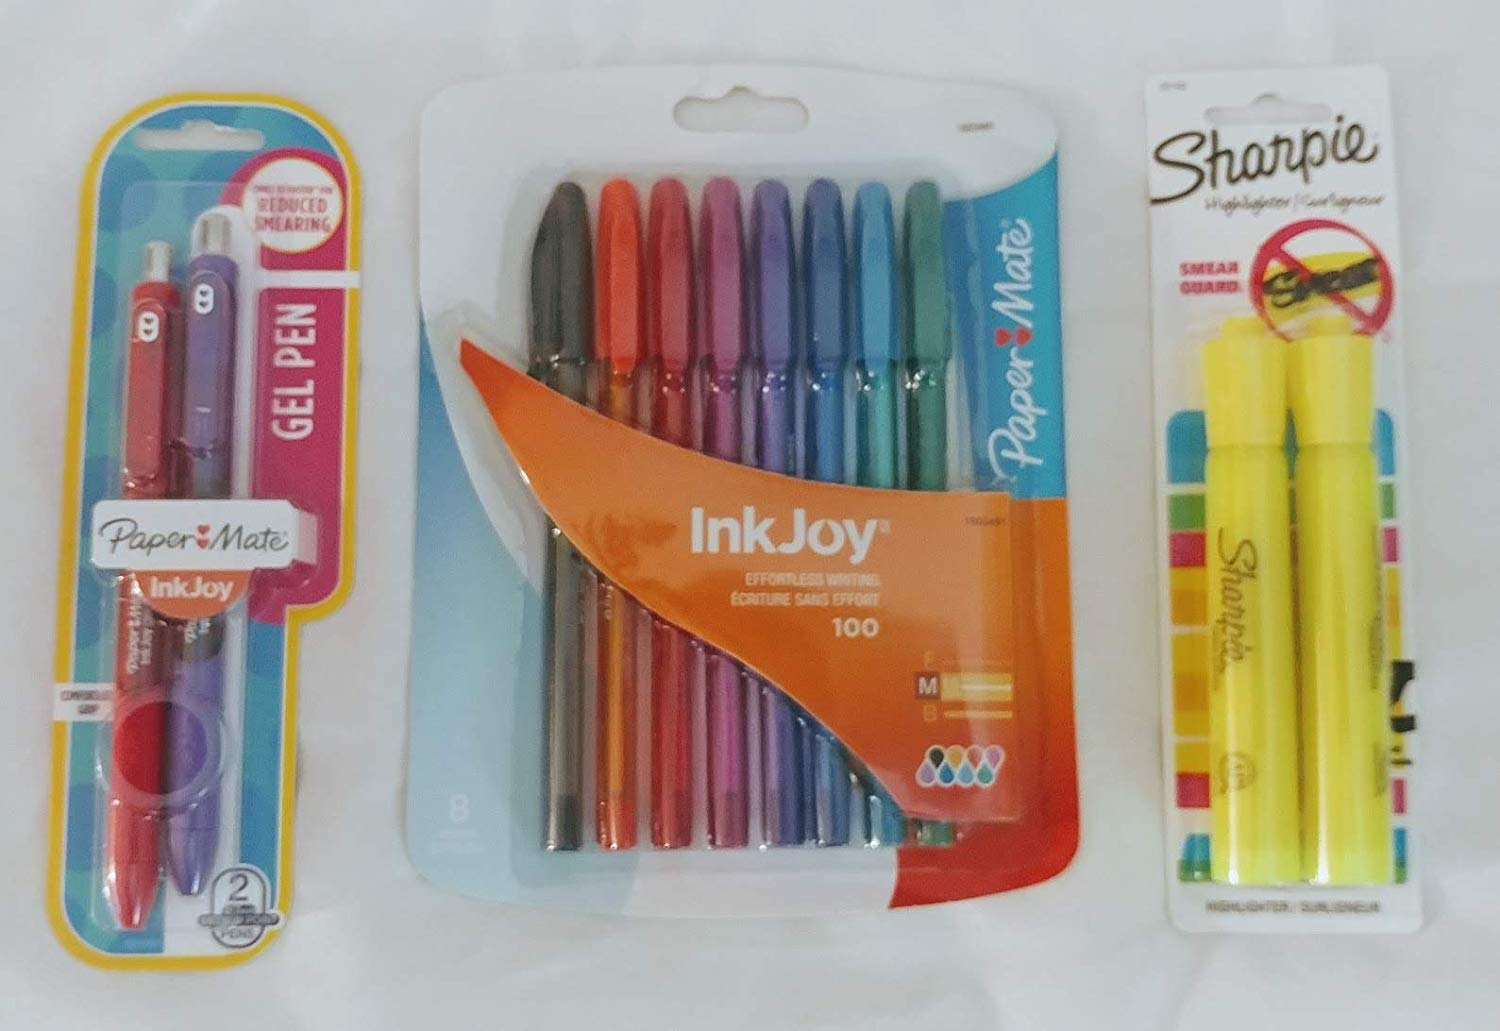 Sharpie Fluorescent Yellow Highlighter (2-Pk) with BONUS InkJoy Gel Pens (2-Pk) and Paper Mate InkJoy 100ST Ballpoint Pen, Medium, Fashion Colors (8-Count) Exclusive Bundle - 3 pieces